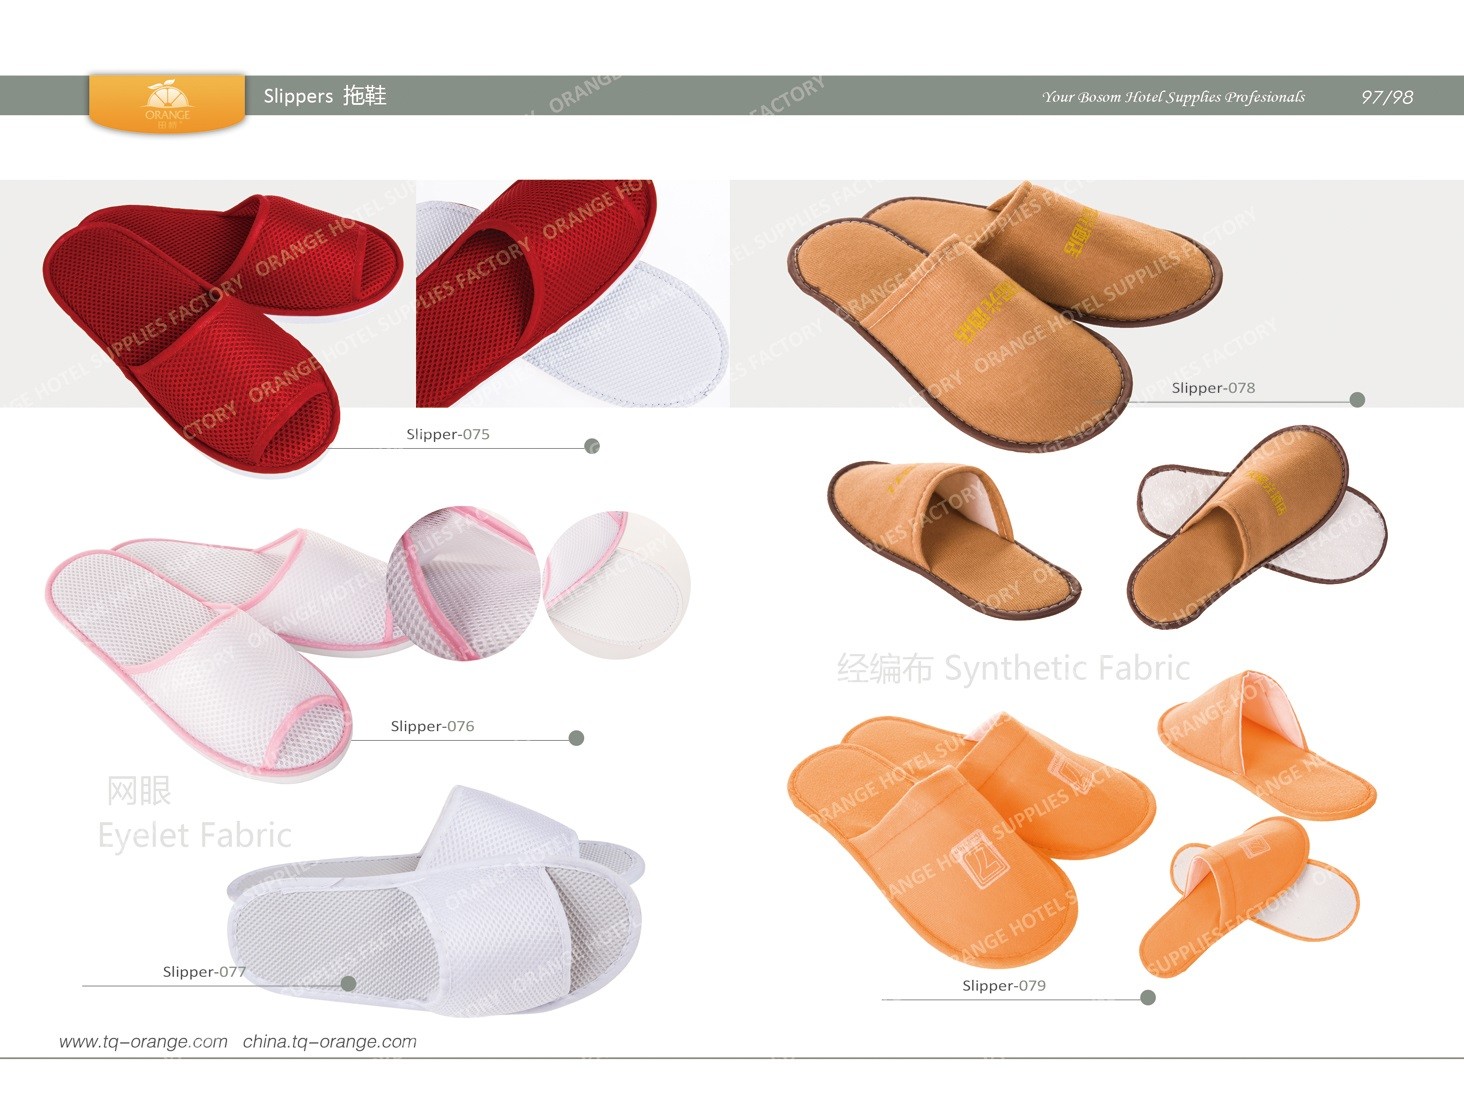 Hotel Eyelet Fabric slippers, Synthetic Fabric slippers